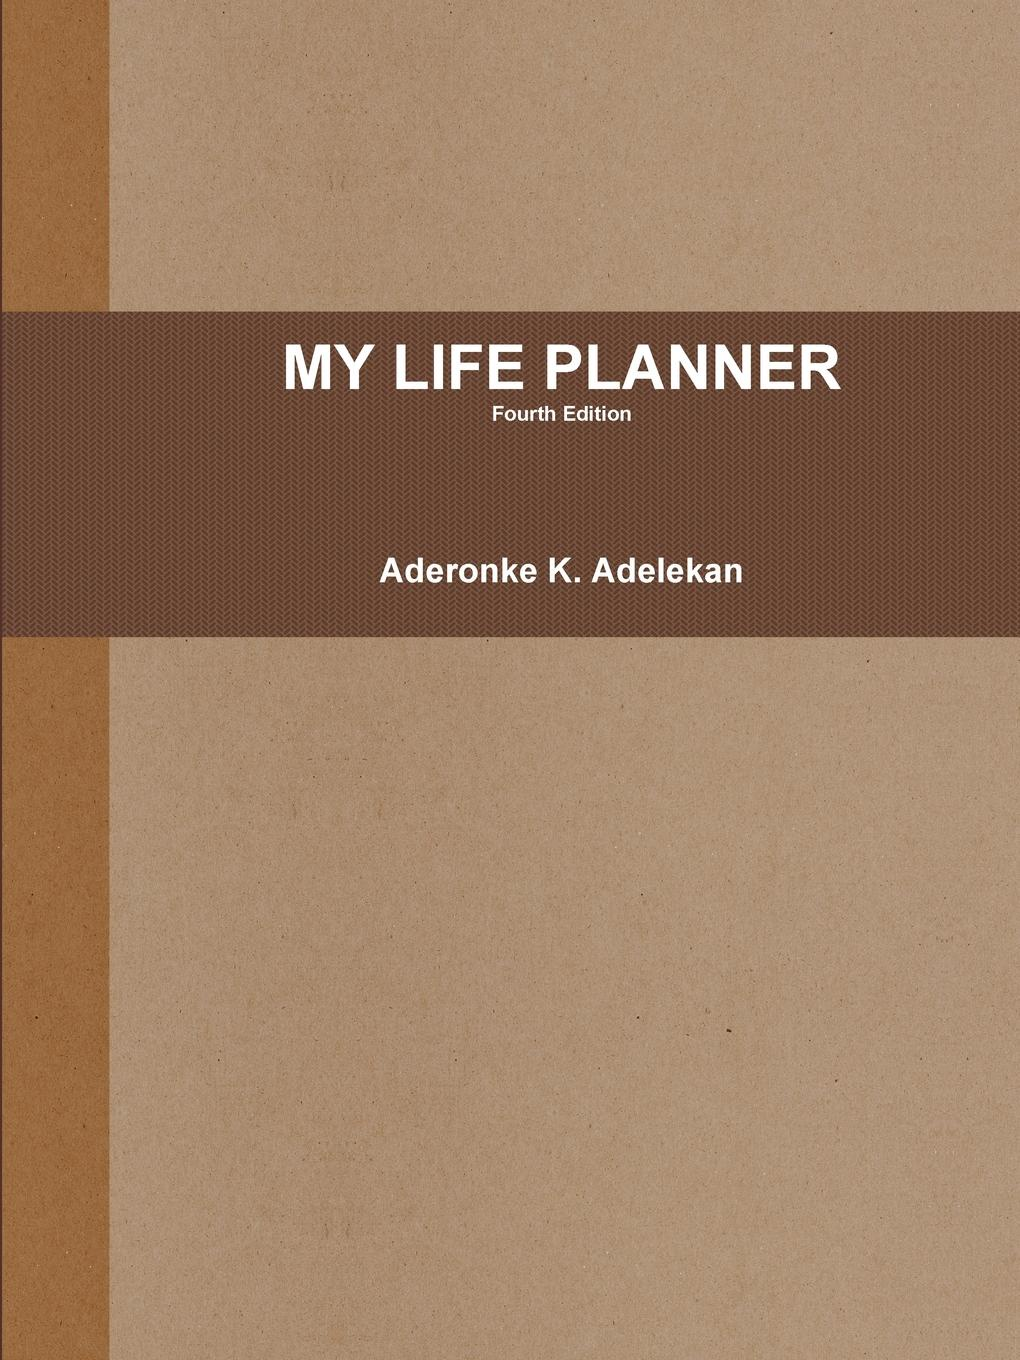 Aderonke Adelekan My Life Planner kaylee berry lifestyle blog planner journal lifestyle blogging content planner never run out of things to blog about again